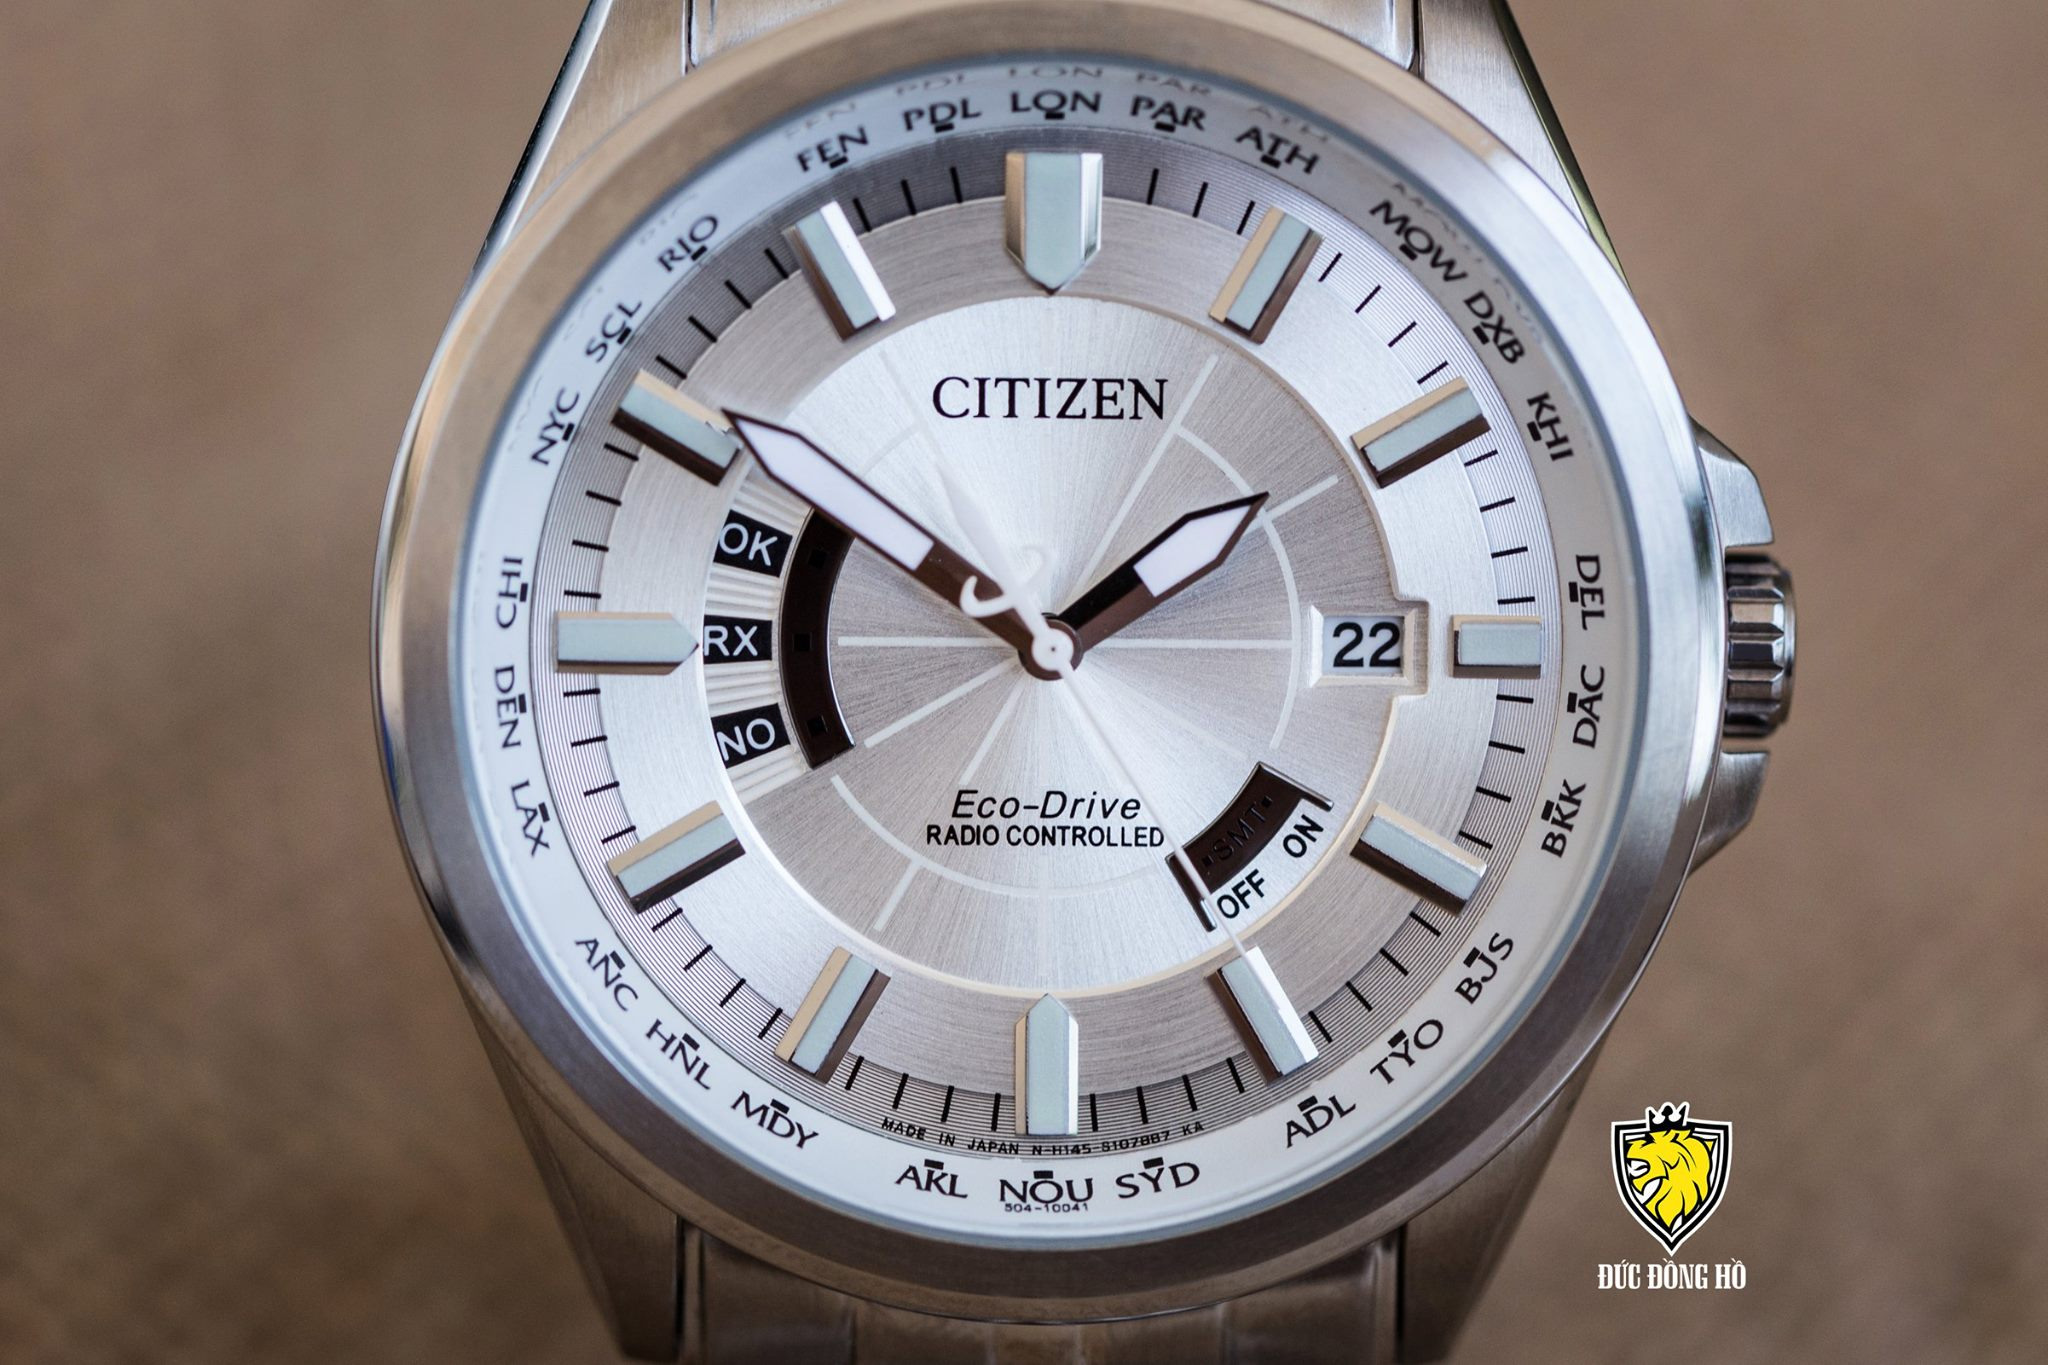 Citizen Nam 003.1